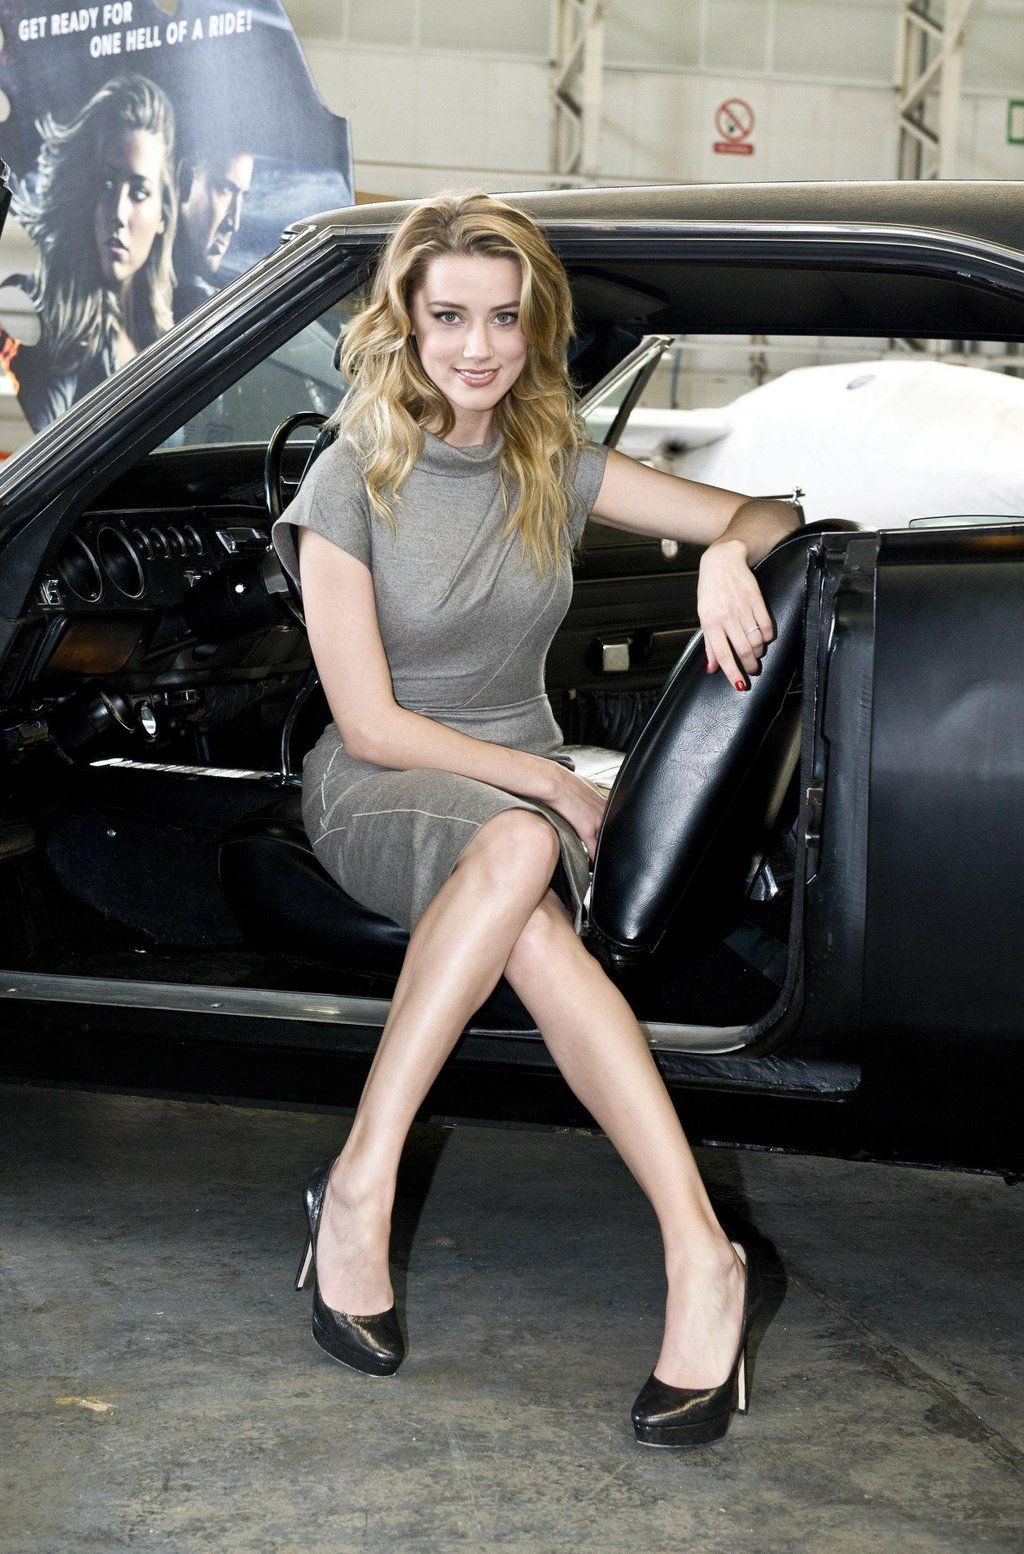 stop-sexy-female-legs-in-classic-cars